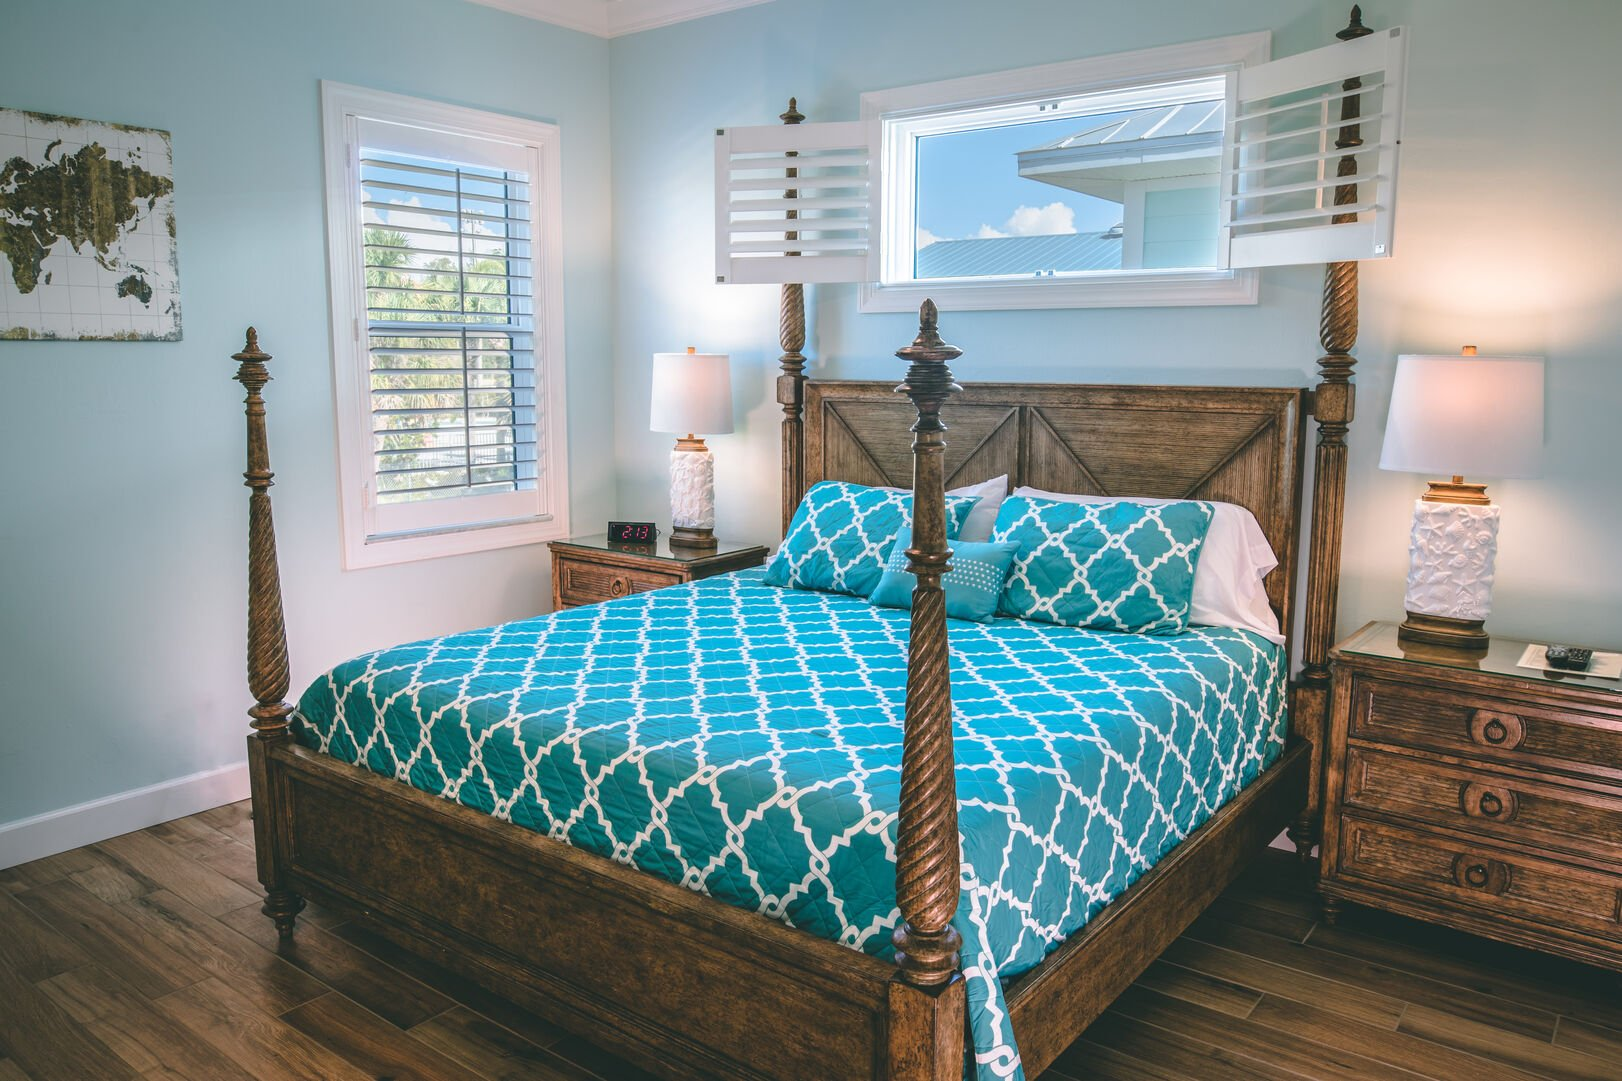 Bedroom with winds and nightstands